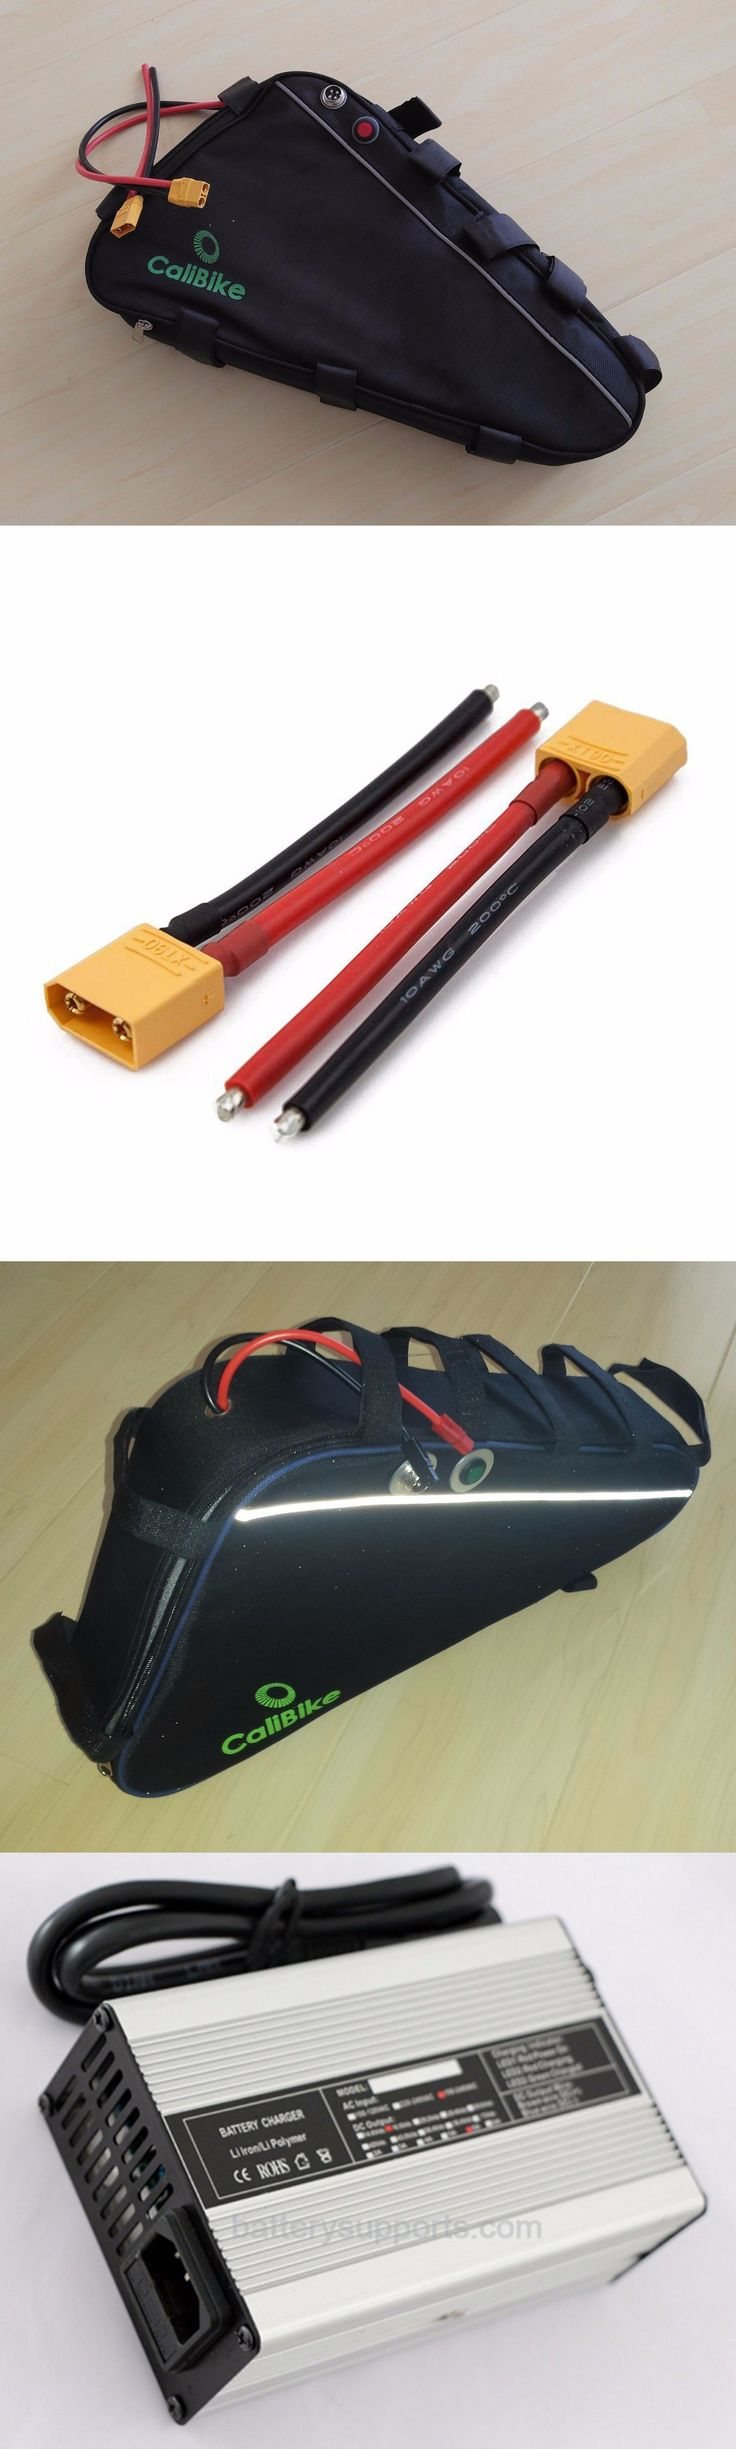 Electric Bicycle Components 177814: 72V18ah Ultra Light Triangle Battery Pack For 3000W Motor -> BUY IT NOW ONLY: $900 on eBay!